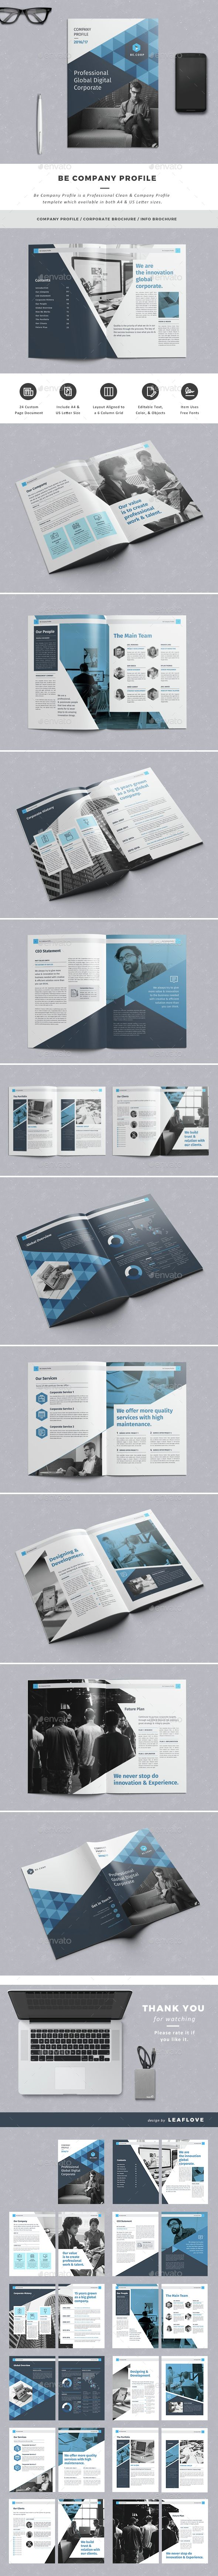 Be Company Profile Template InDesign INDD. Download here: http ...